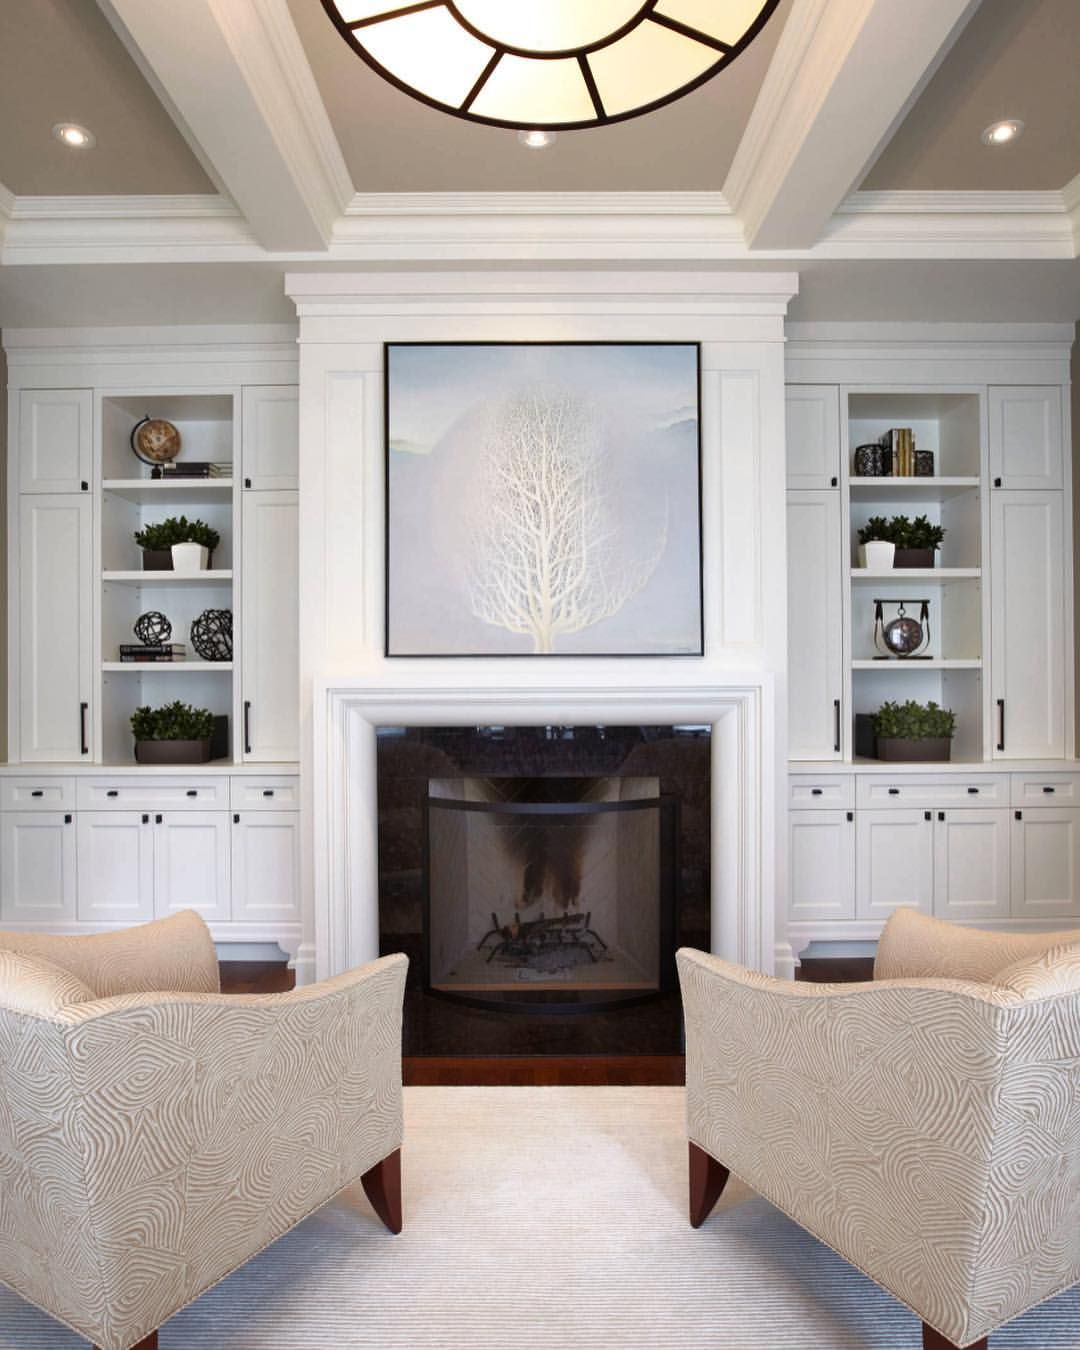 A Transitional Style Great Room By Parkyn Design Www Parkyndesign Com: Transitional Style Living Room, Transitional Living Rooms, Home Decor Styles